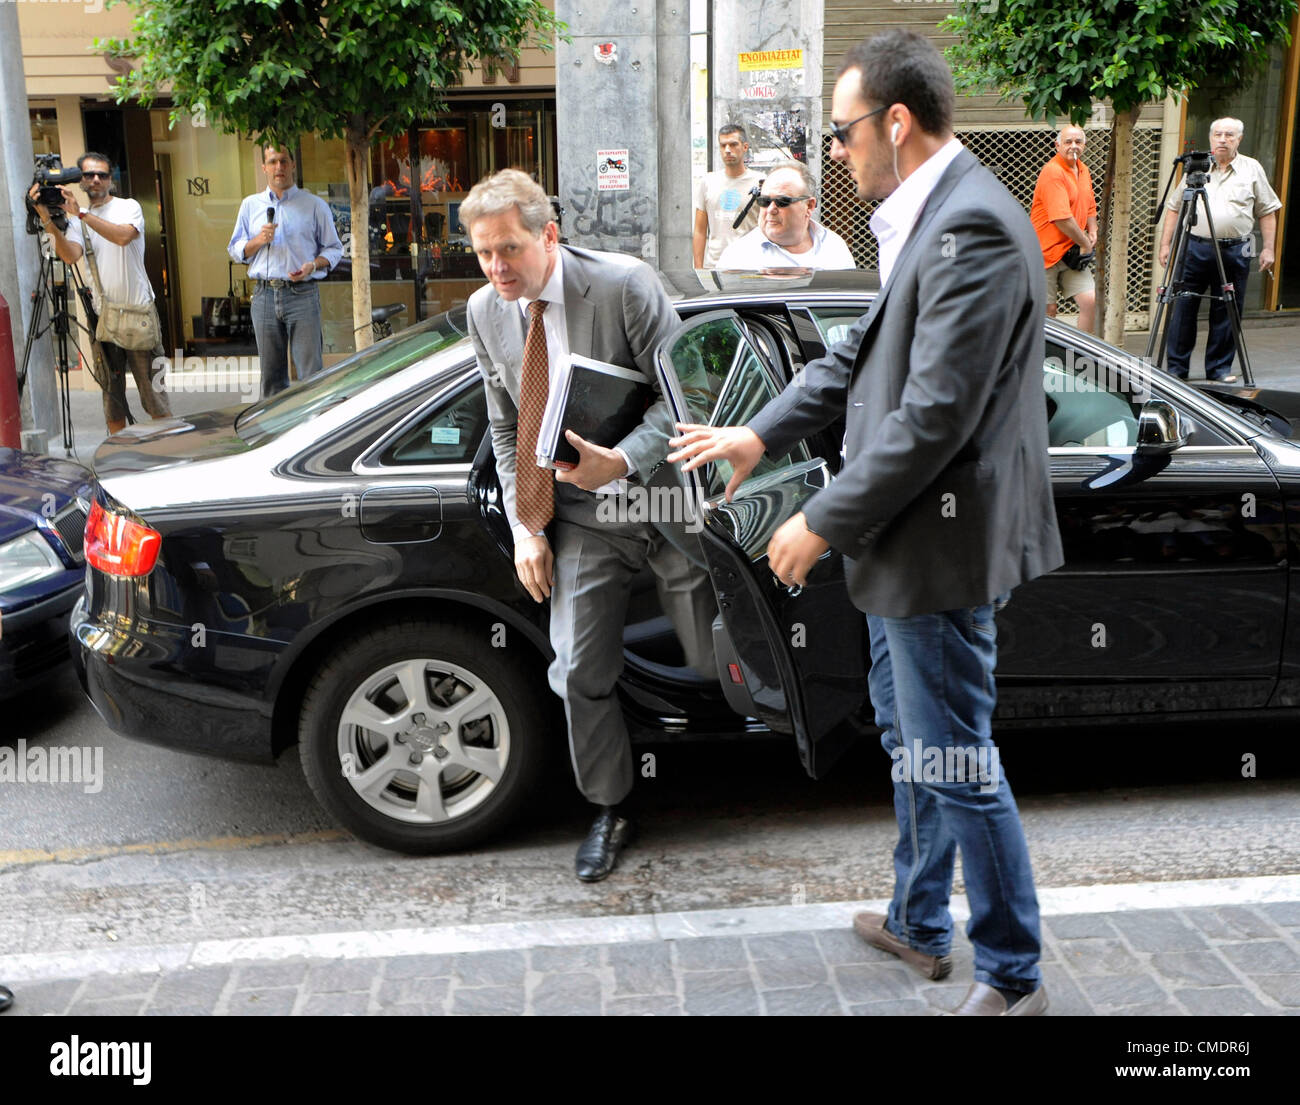 July 26, 2012 Athens Greece. Poul Thomsen, mission Chief, International Monetary Fund (IMF) arrives at the Ministry - Stock Image